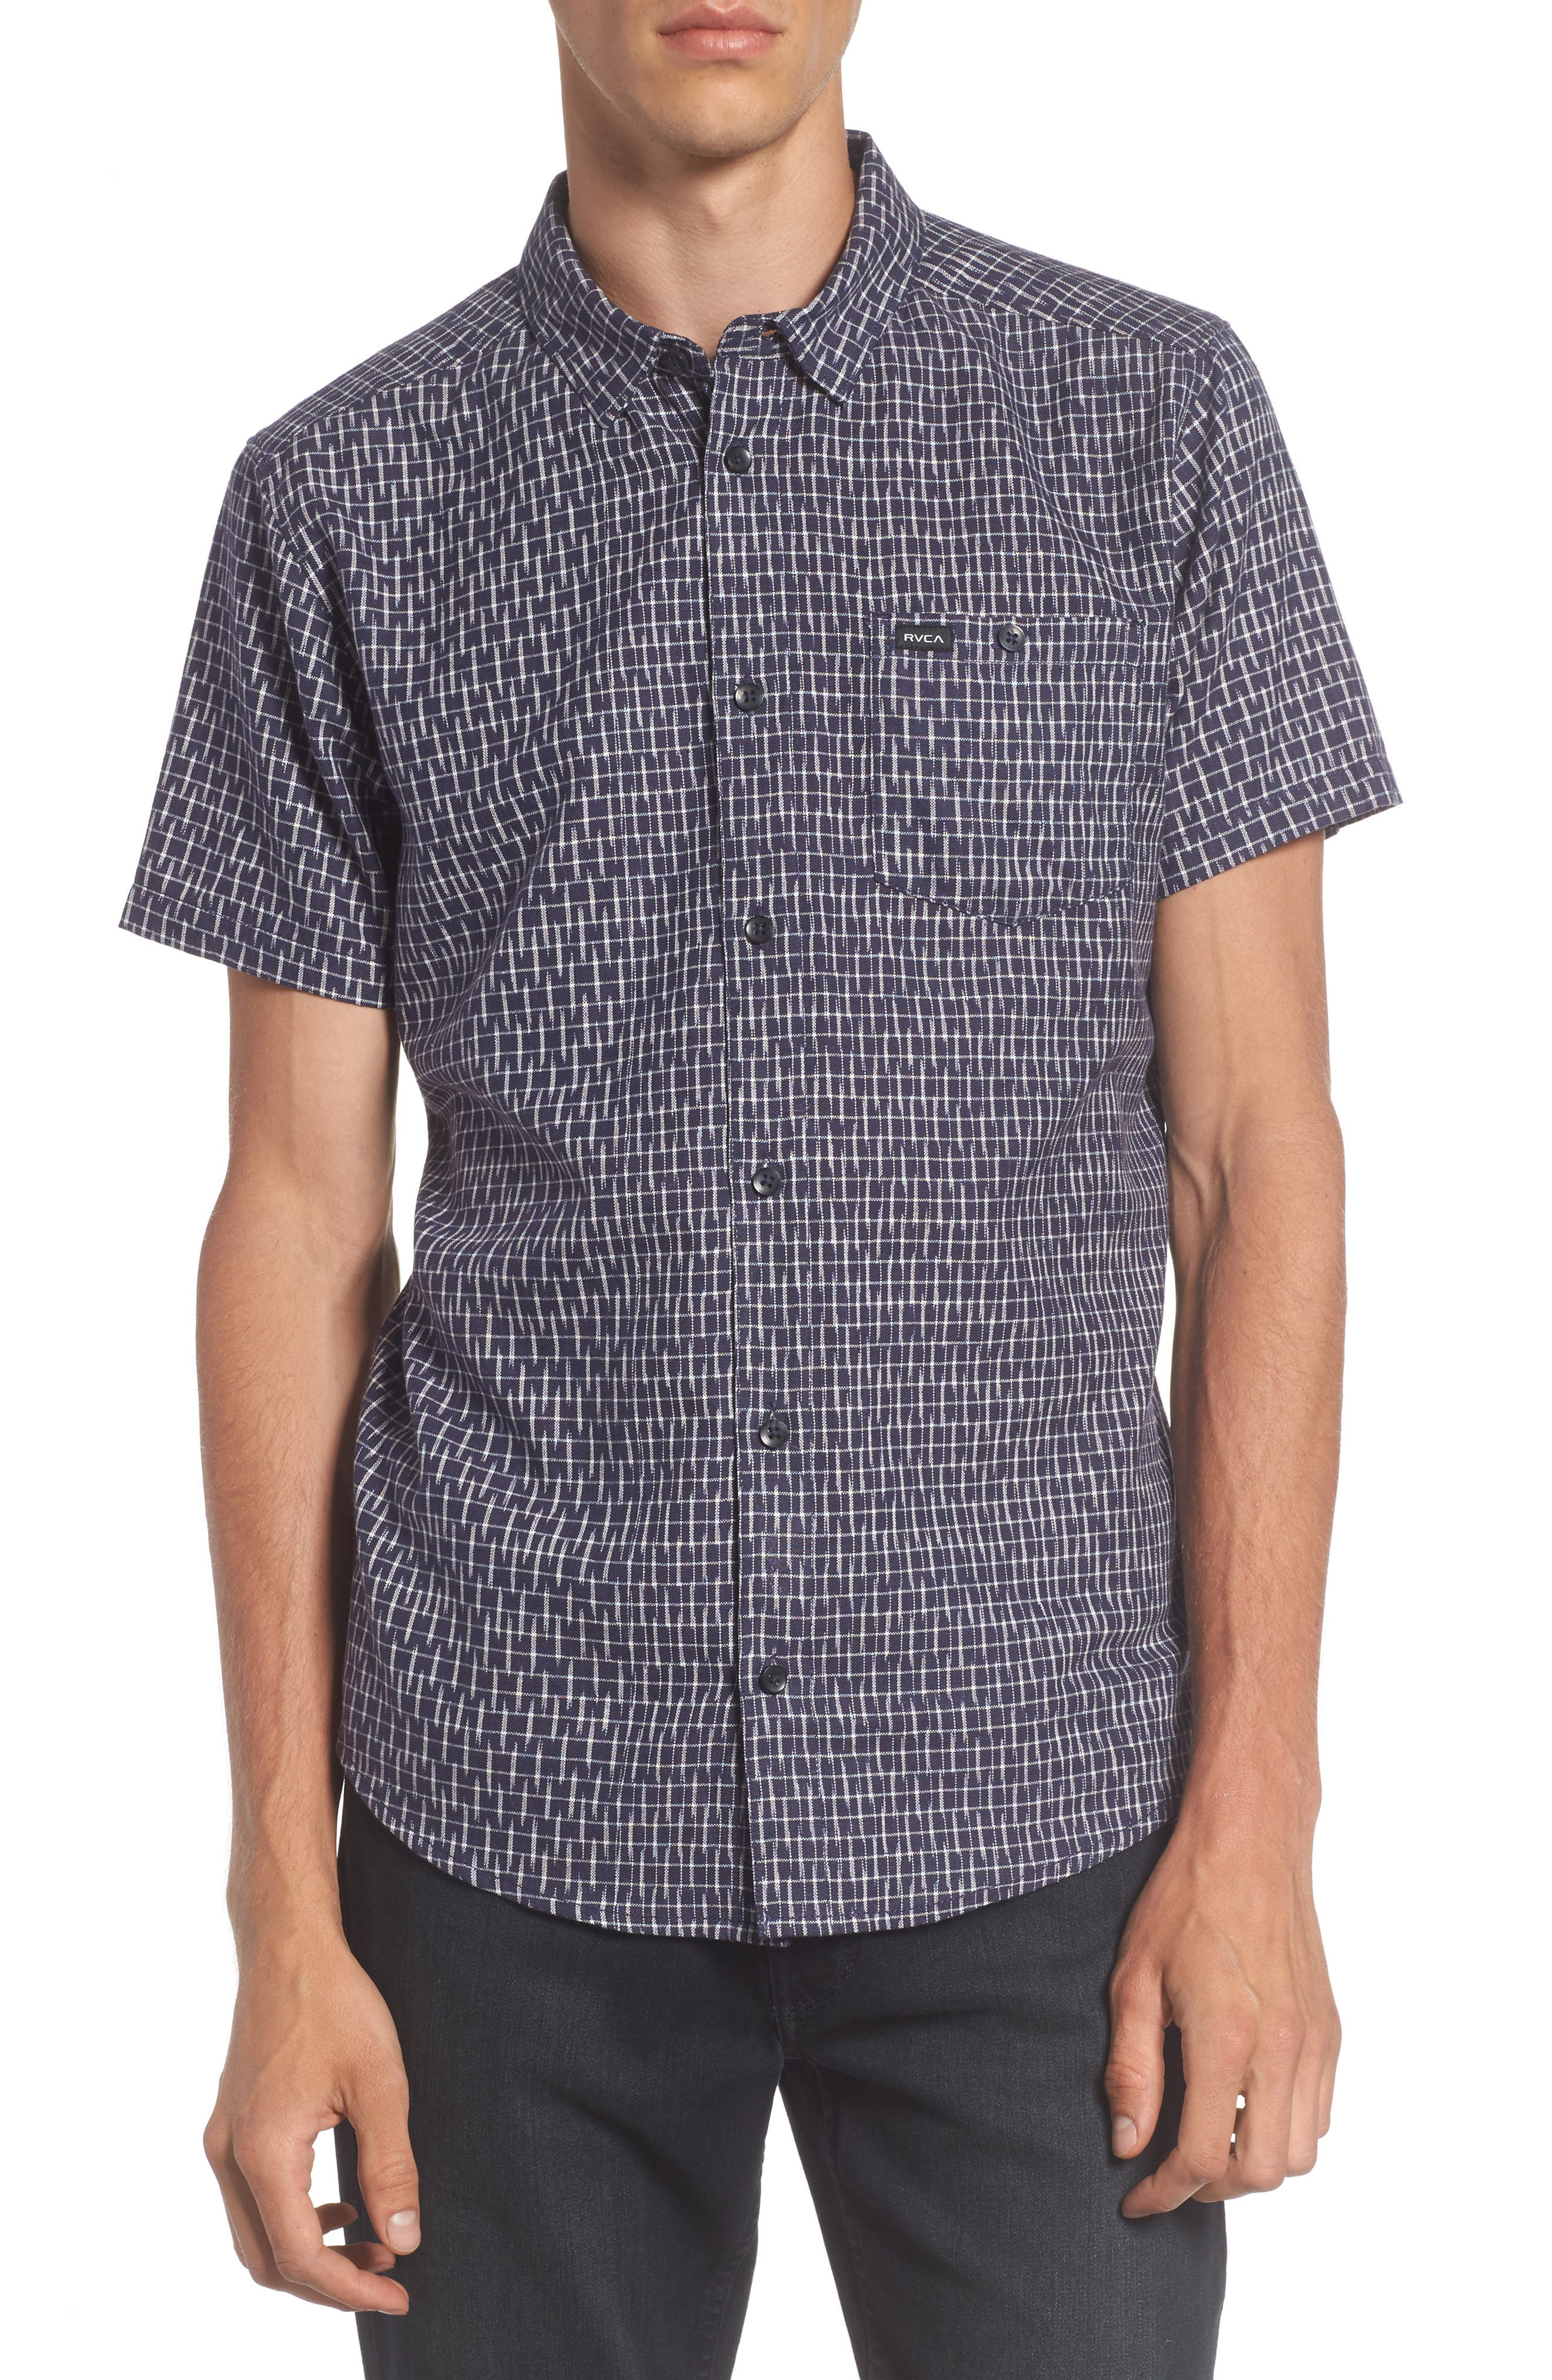 Alternate Image 1 Selected - RVCA Fontana Print Woven Shirt